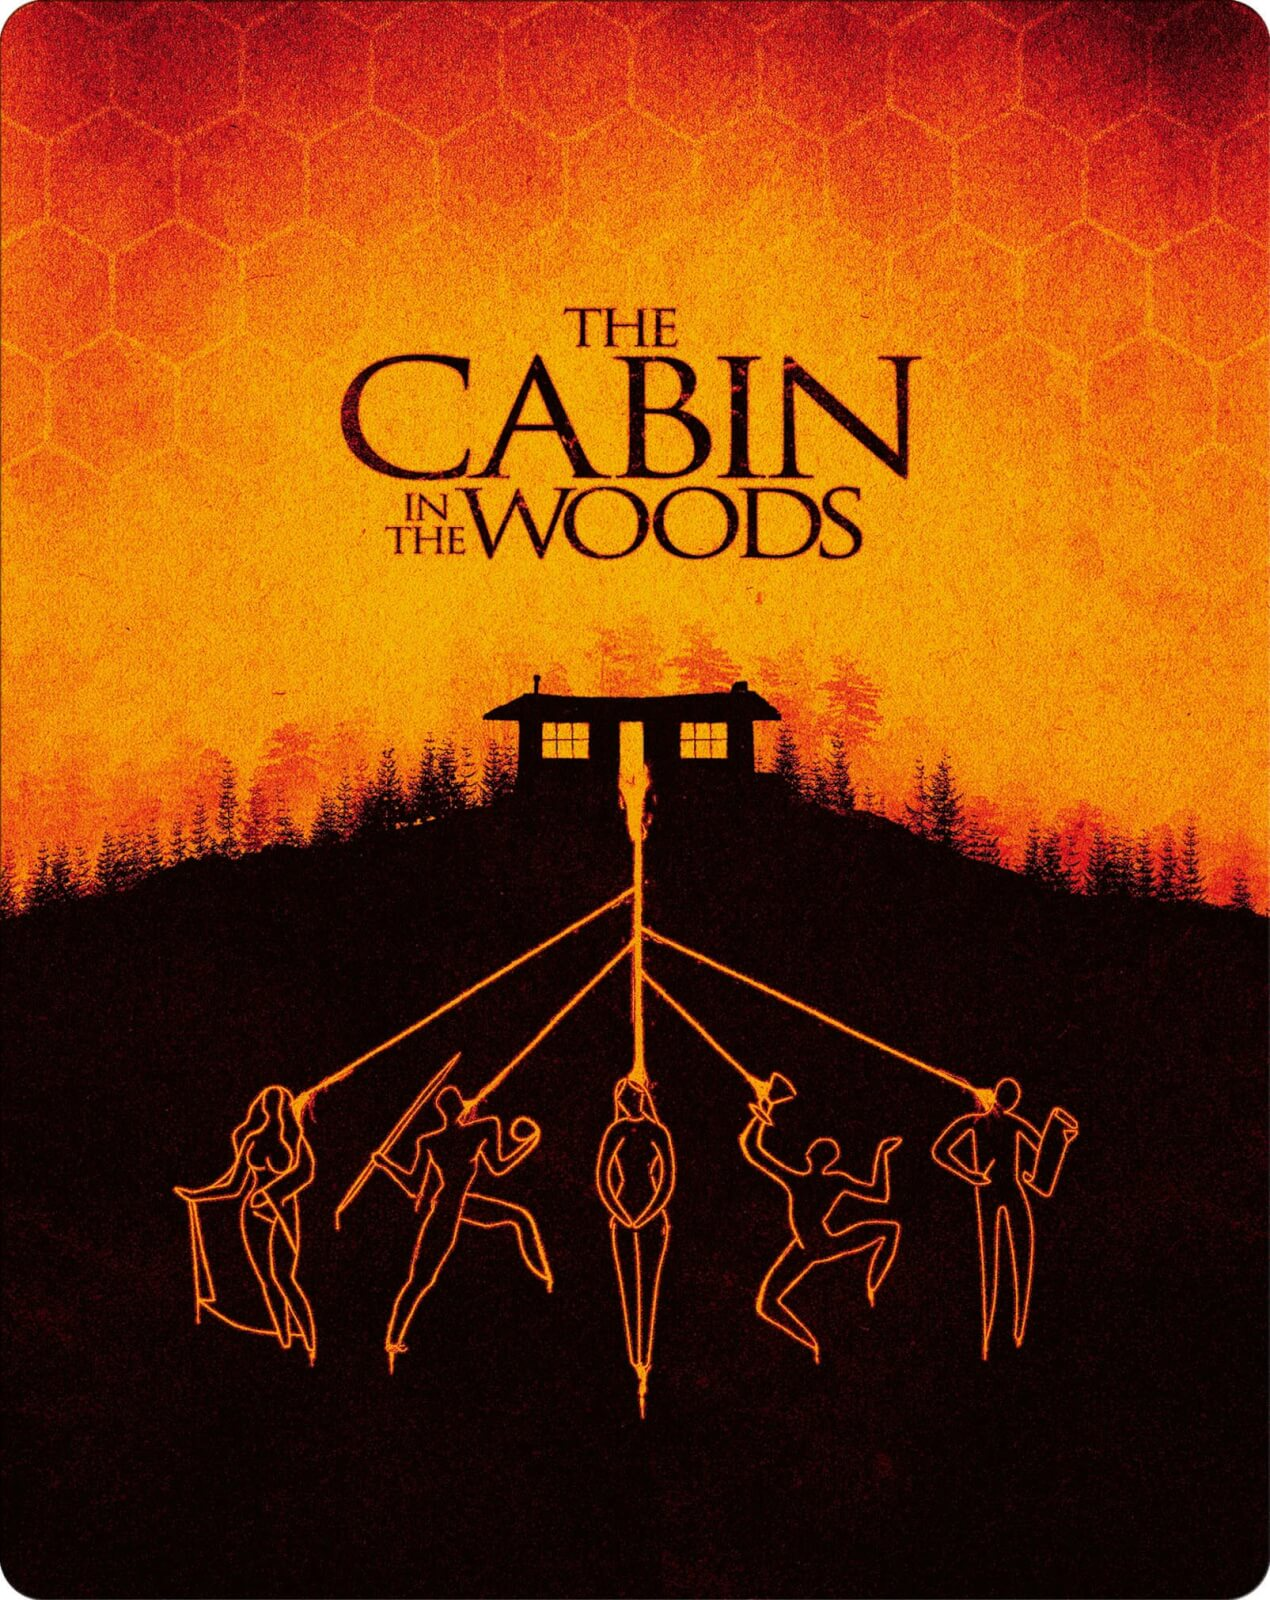 Cabin In The Woods 4K Ultra HD (Includes Blu-Ray Version) - Zavvi Exclusive Steelbook